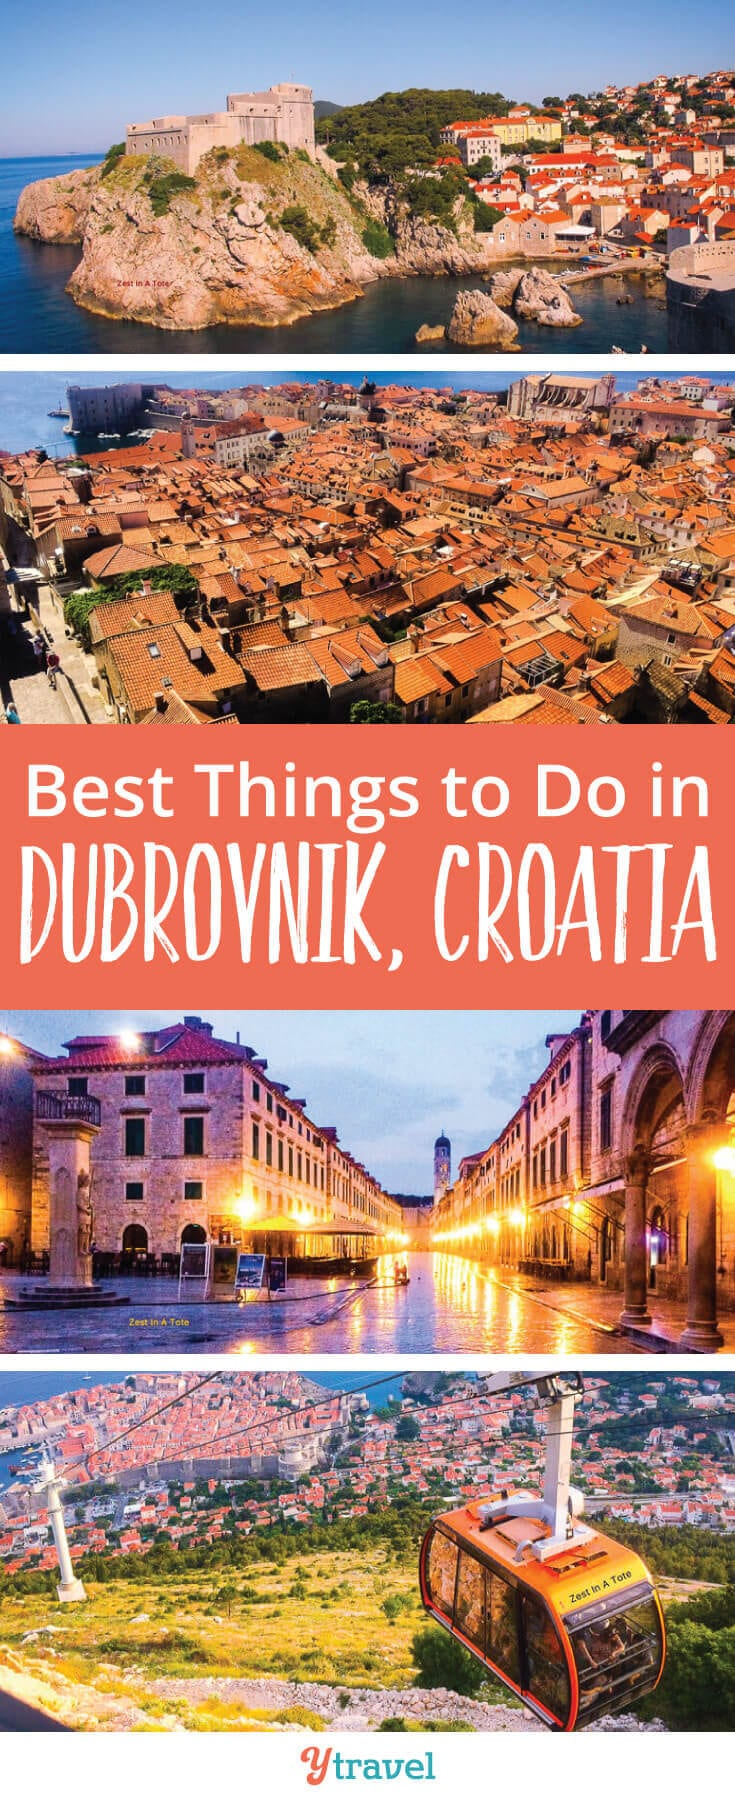 Best things to do in Dubrovnik, Croatia. Tips on what to see and do, where to eat and stay.